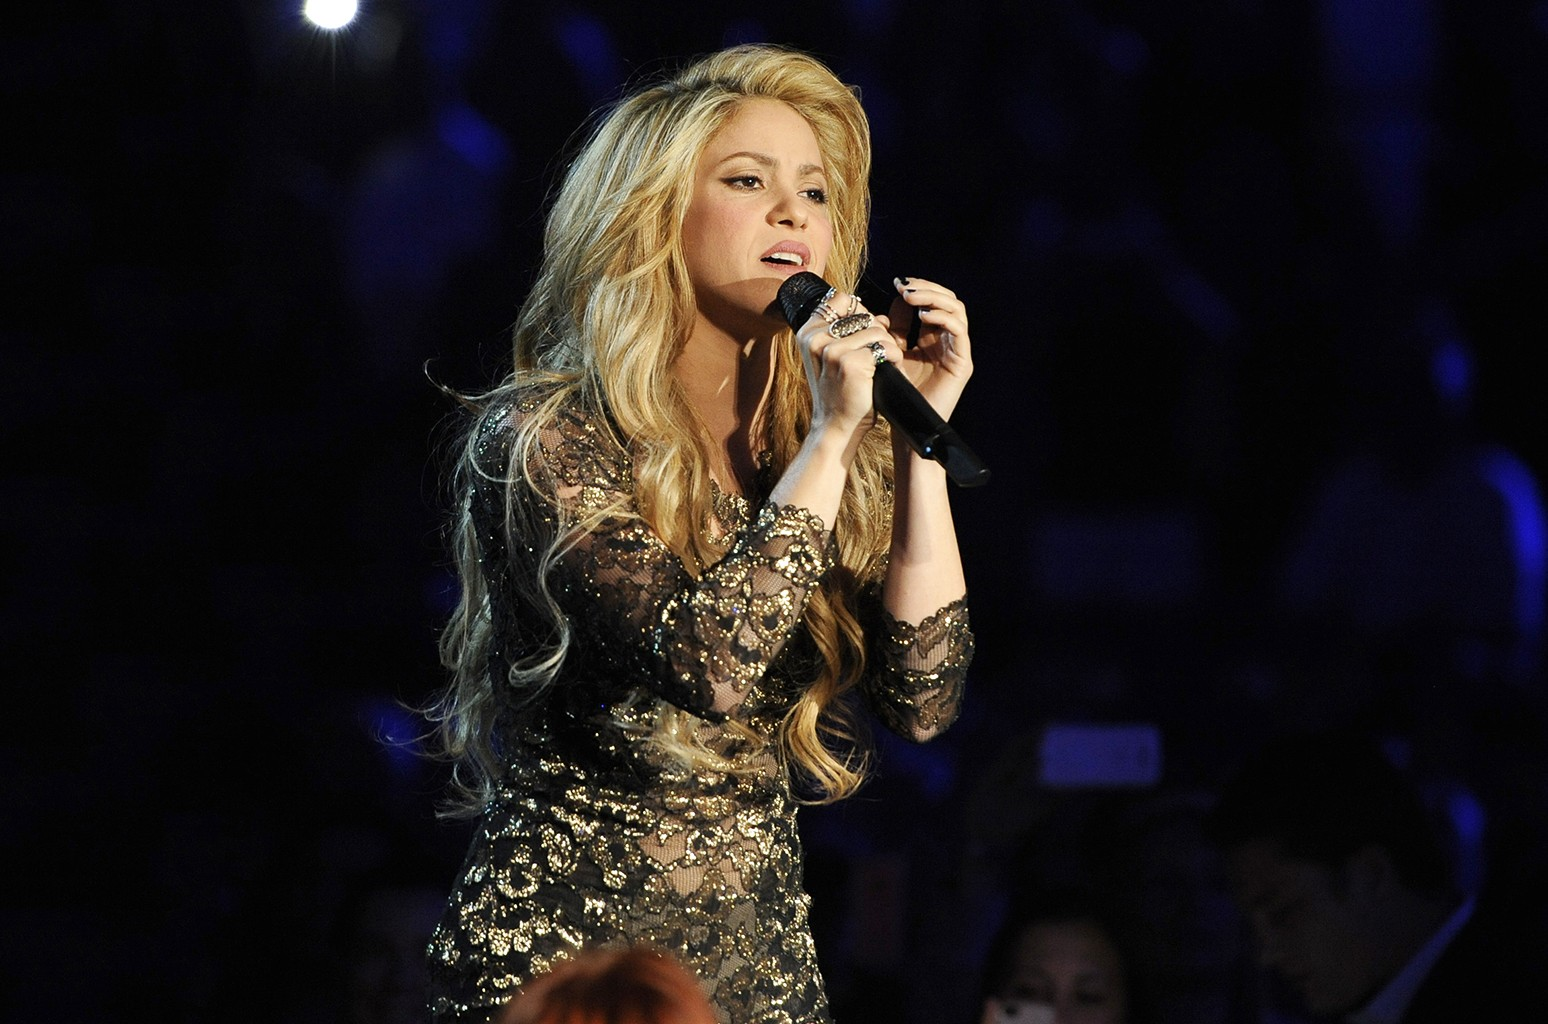 Shakira performs at the Billboard Music Awards at the MGM Grand Garden Arena on May 18, 2014 in Las Vegas.